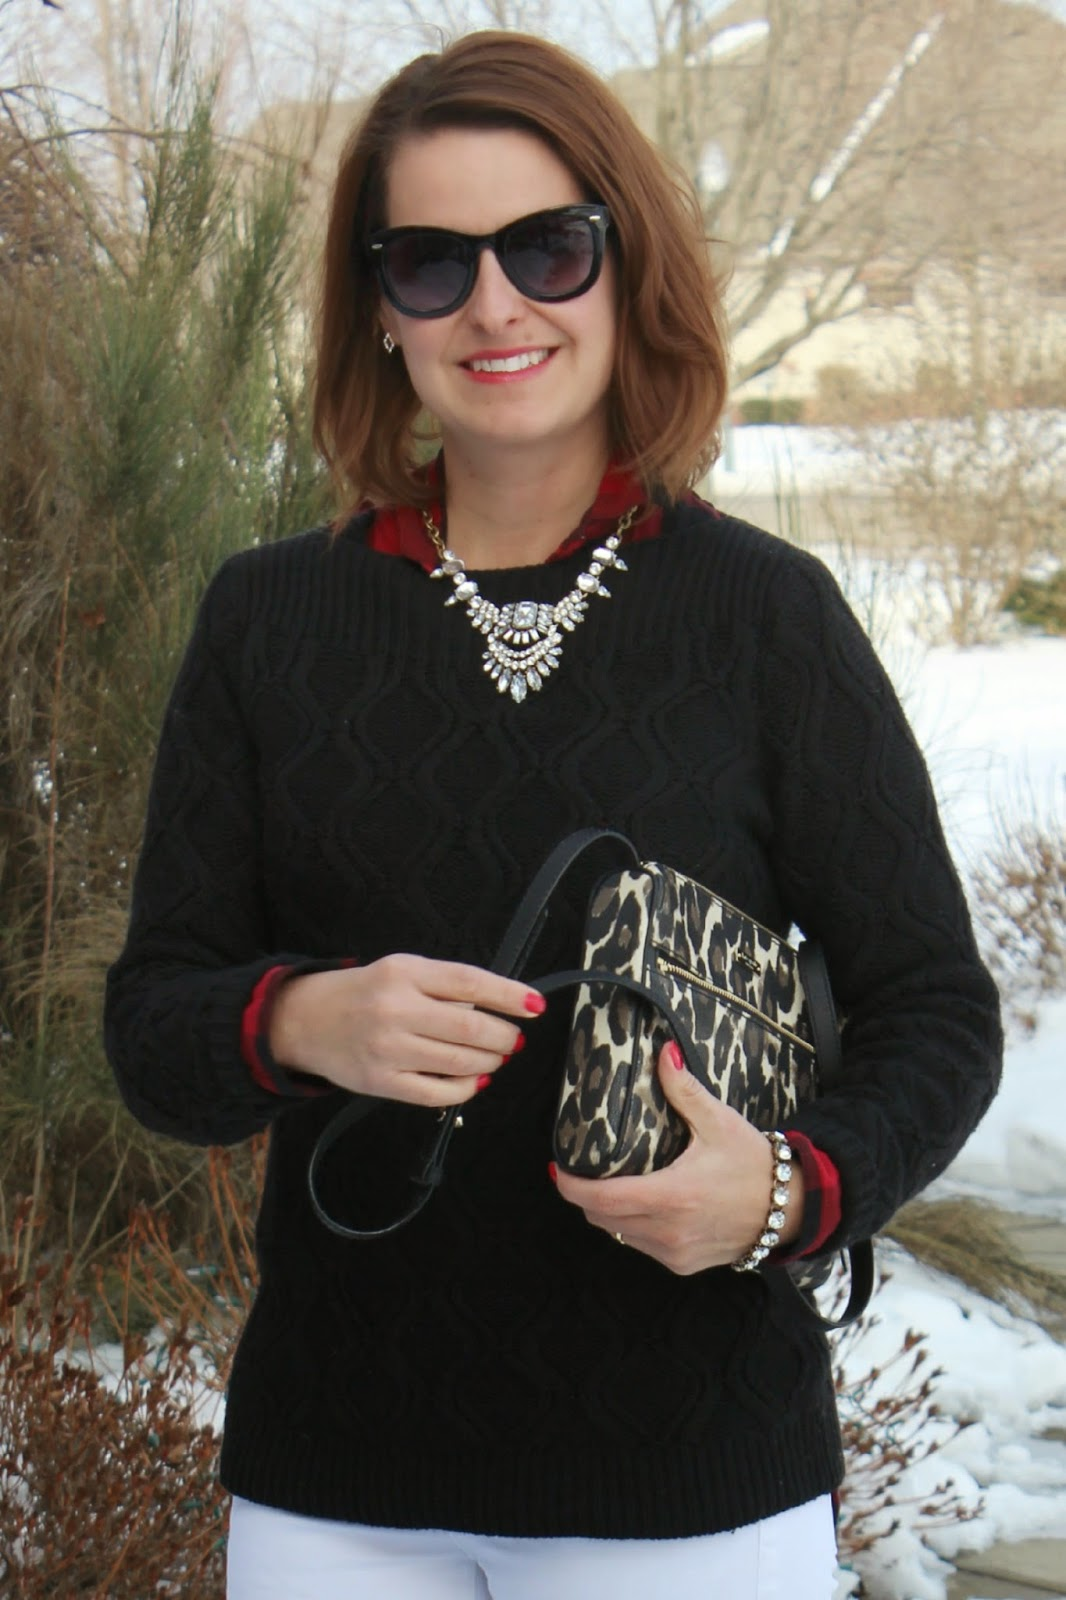 White jeans in winter, red and black buffalo plaid shirt, black sweater, crystal necklace, earrings, bracelet, black riding boots, Kate Spade leopard purse, winter look